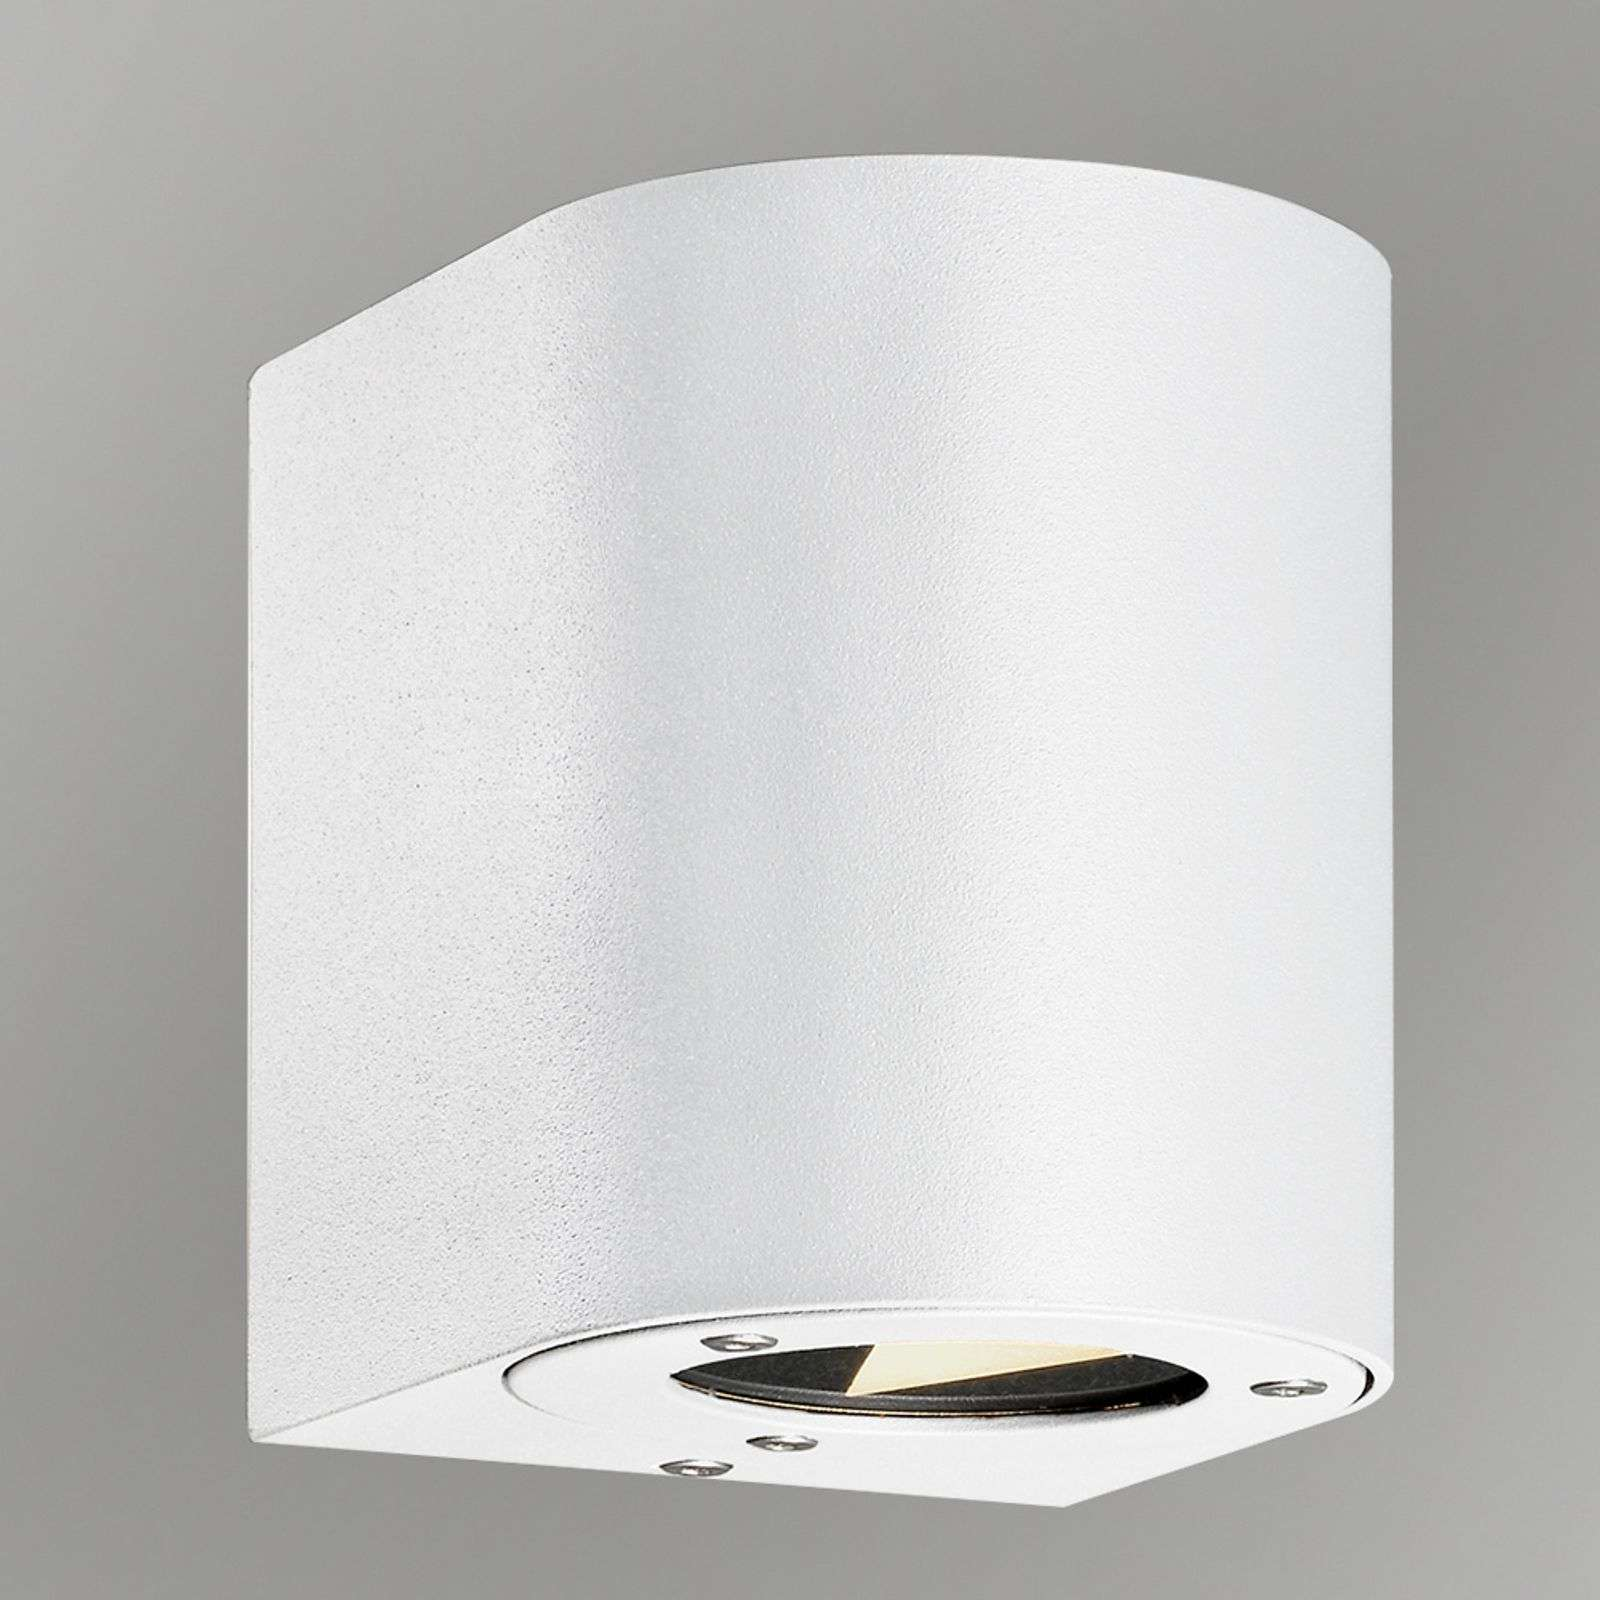 Aplique versátil de pared ext. LED Canto, blanco